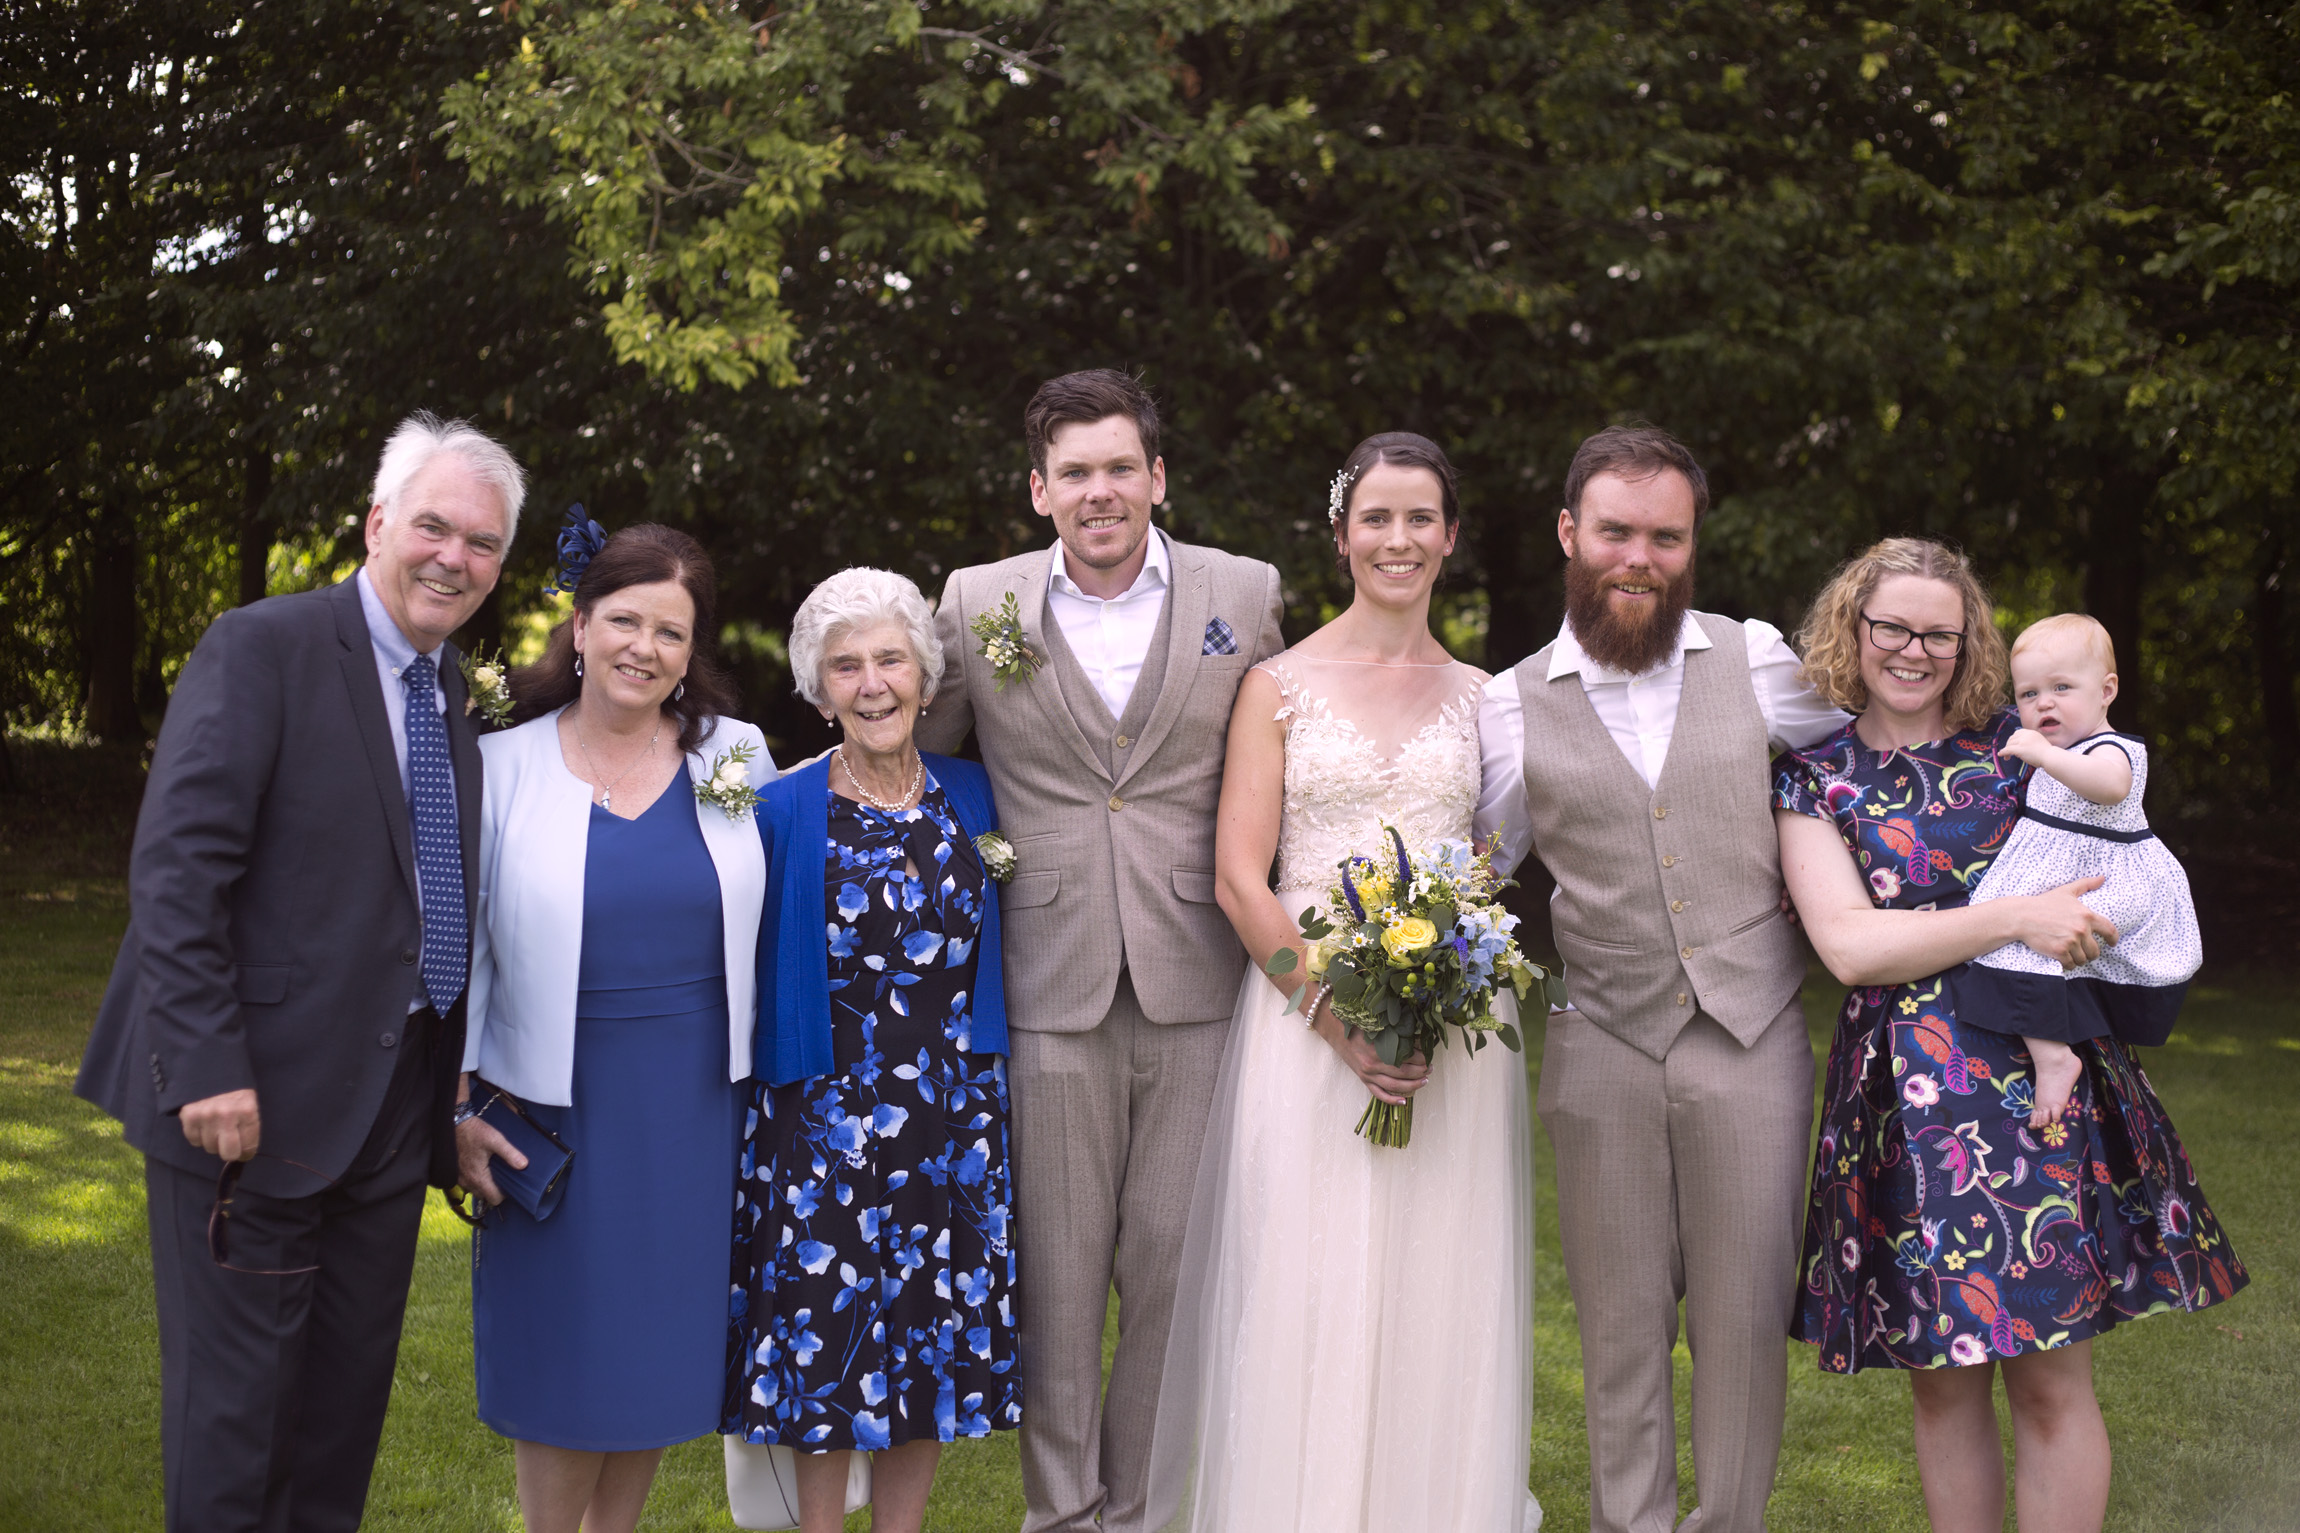 Family portrait with bride and groom Cripps barn outdoor wedding photographer